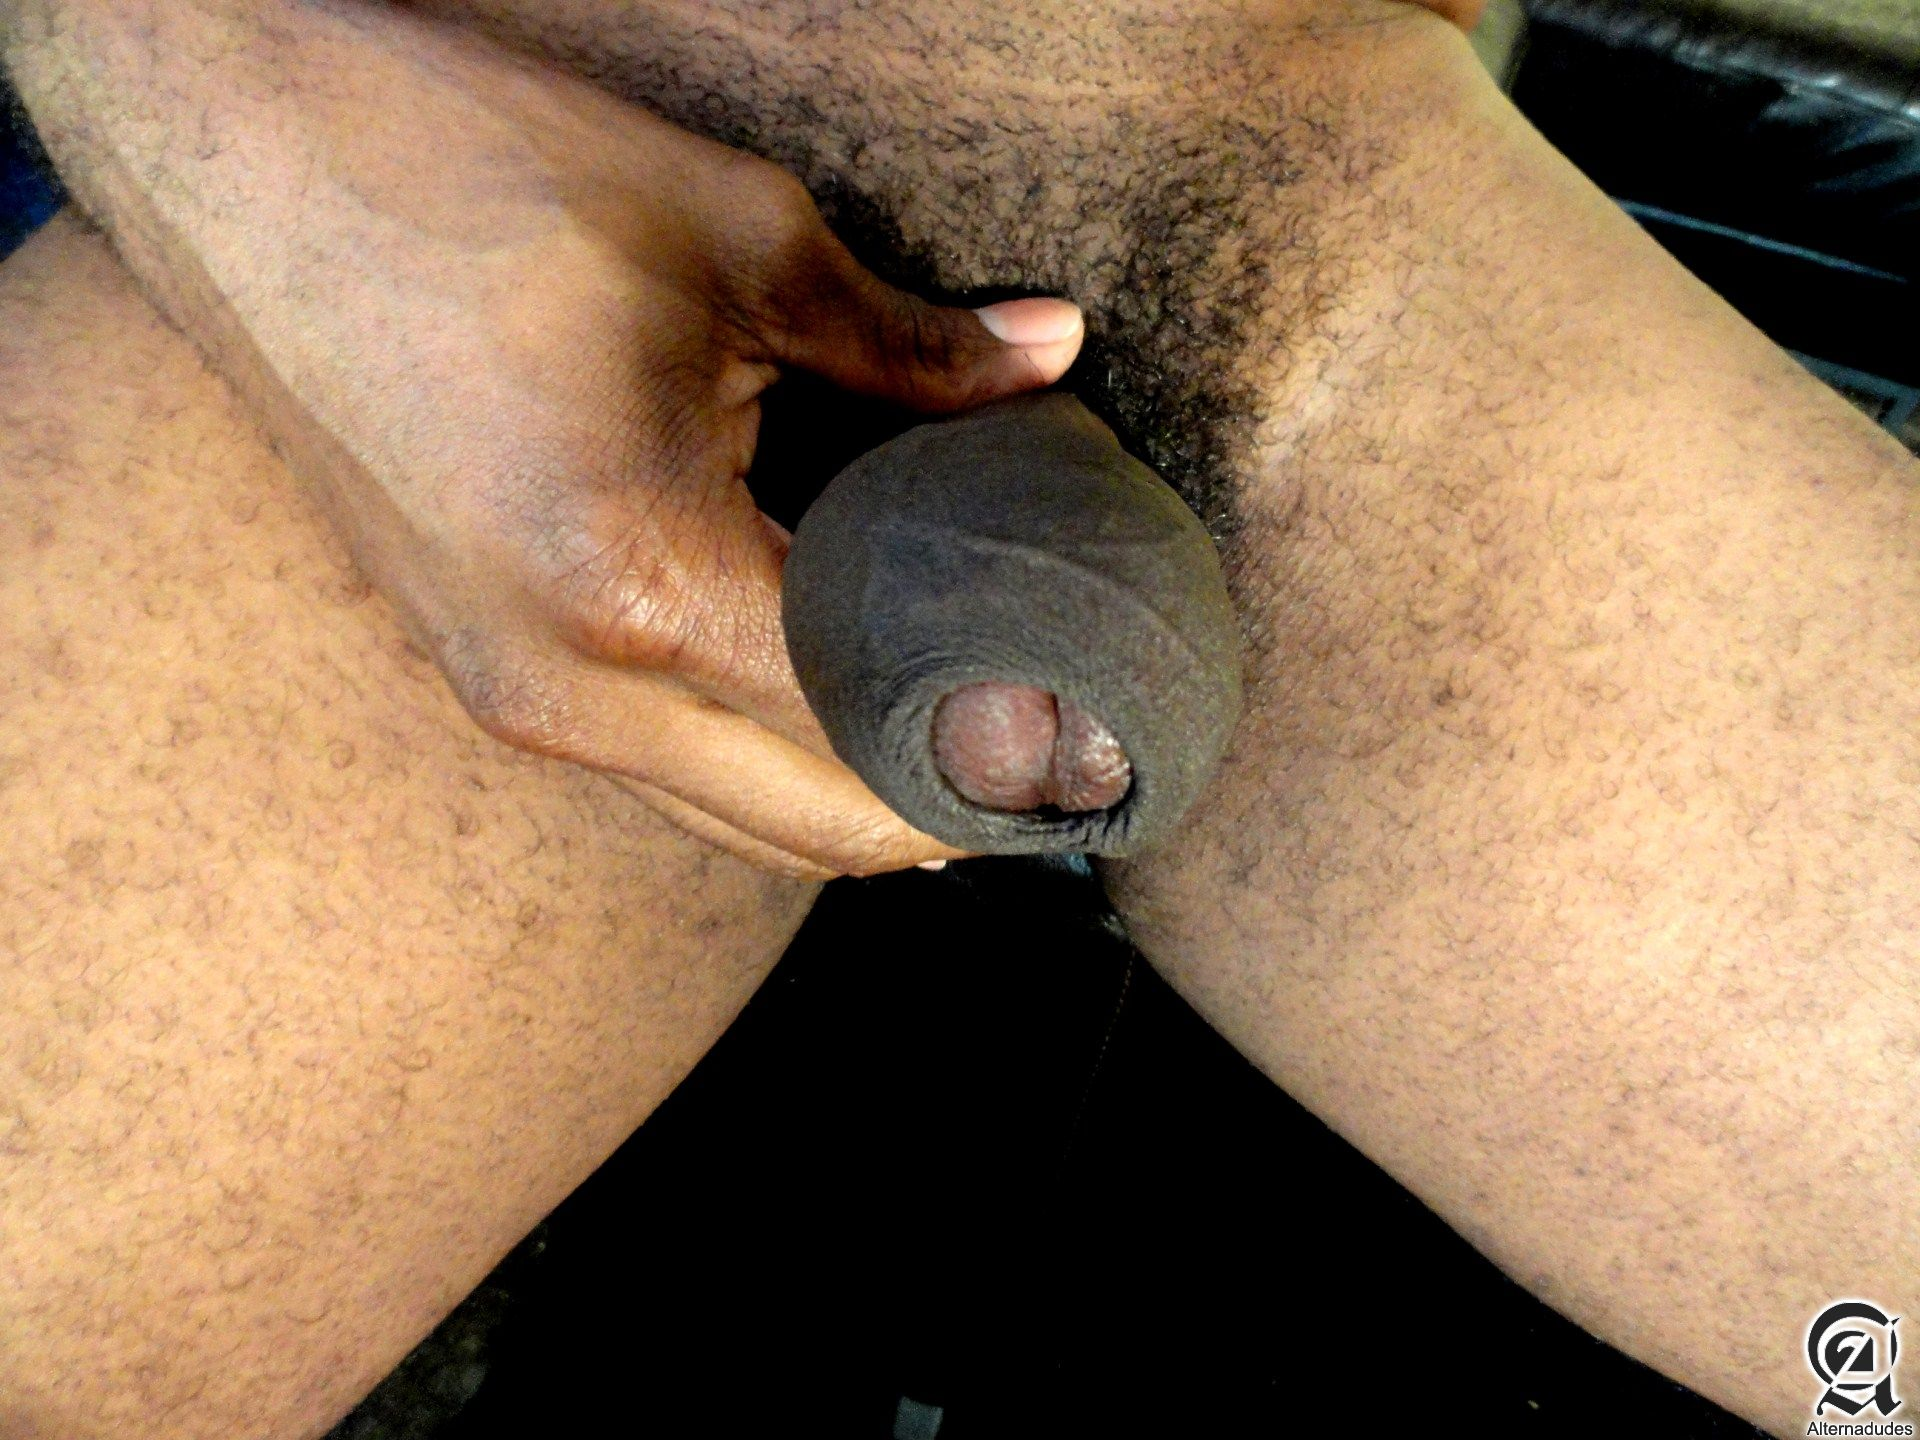 Theme simply big cock for big pretty ebony